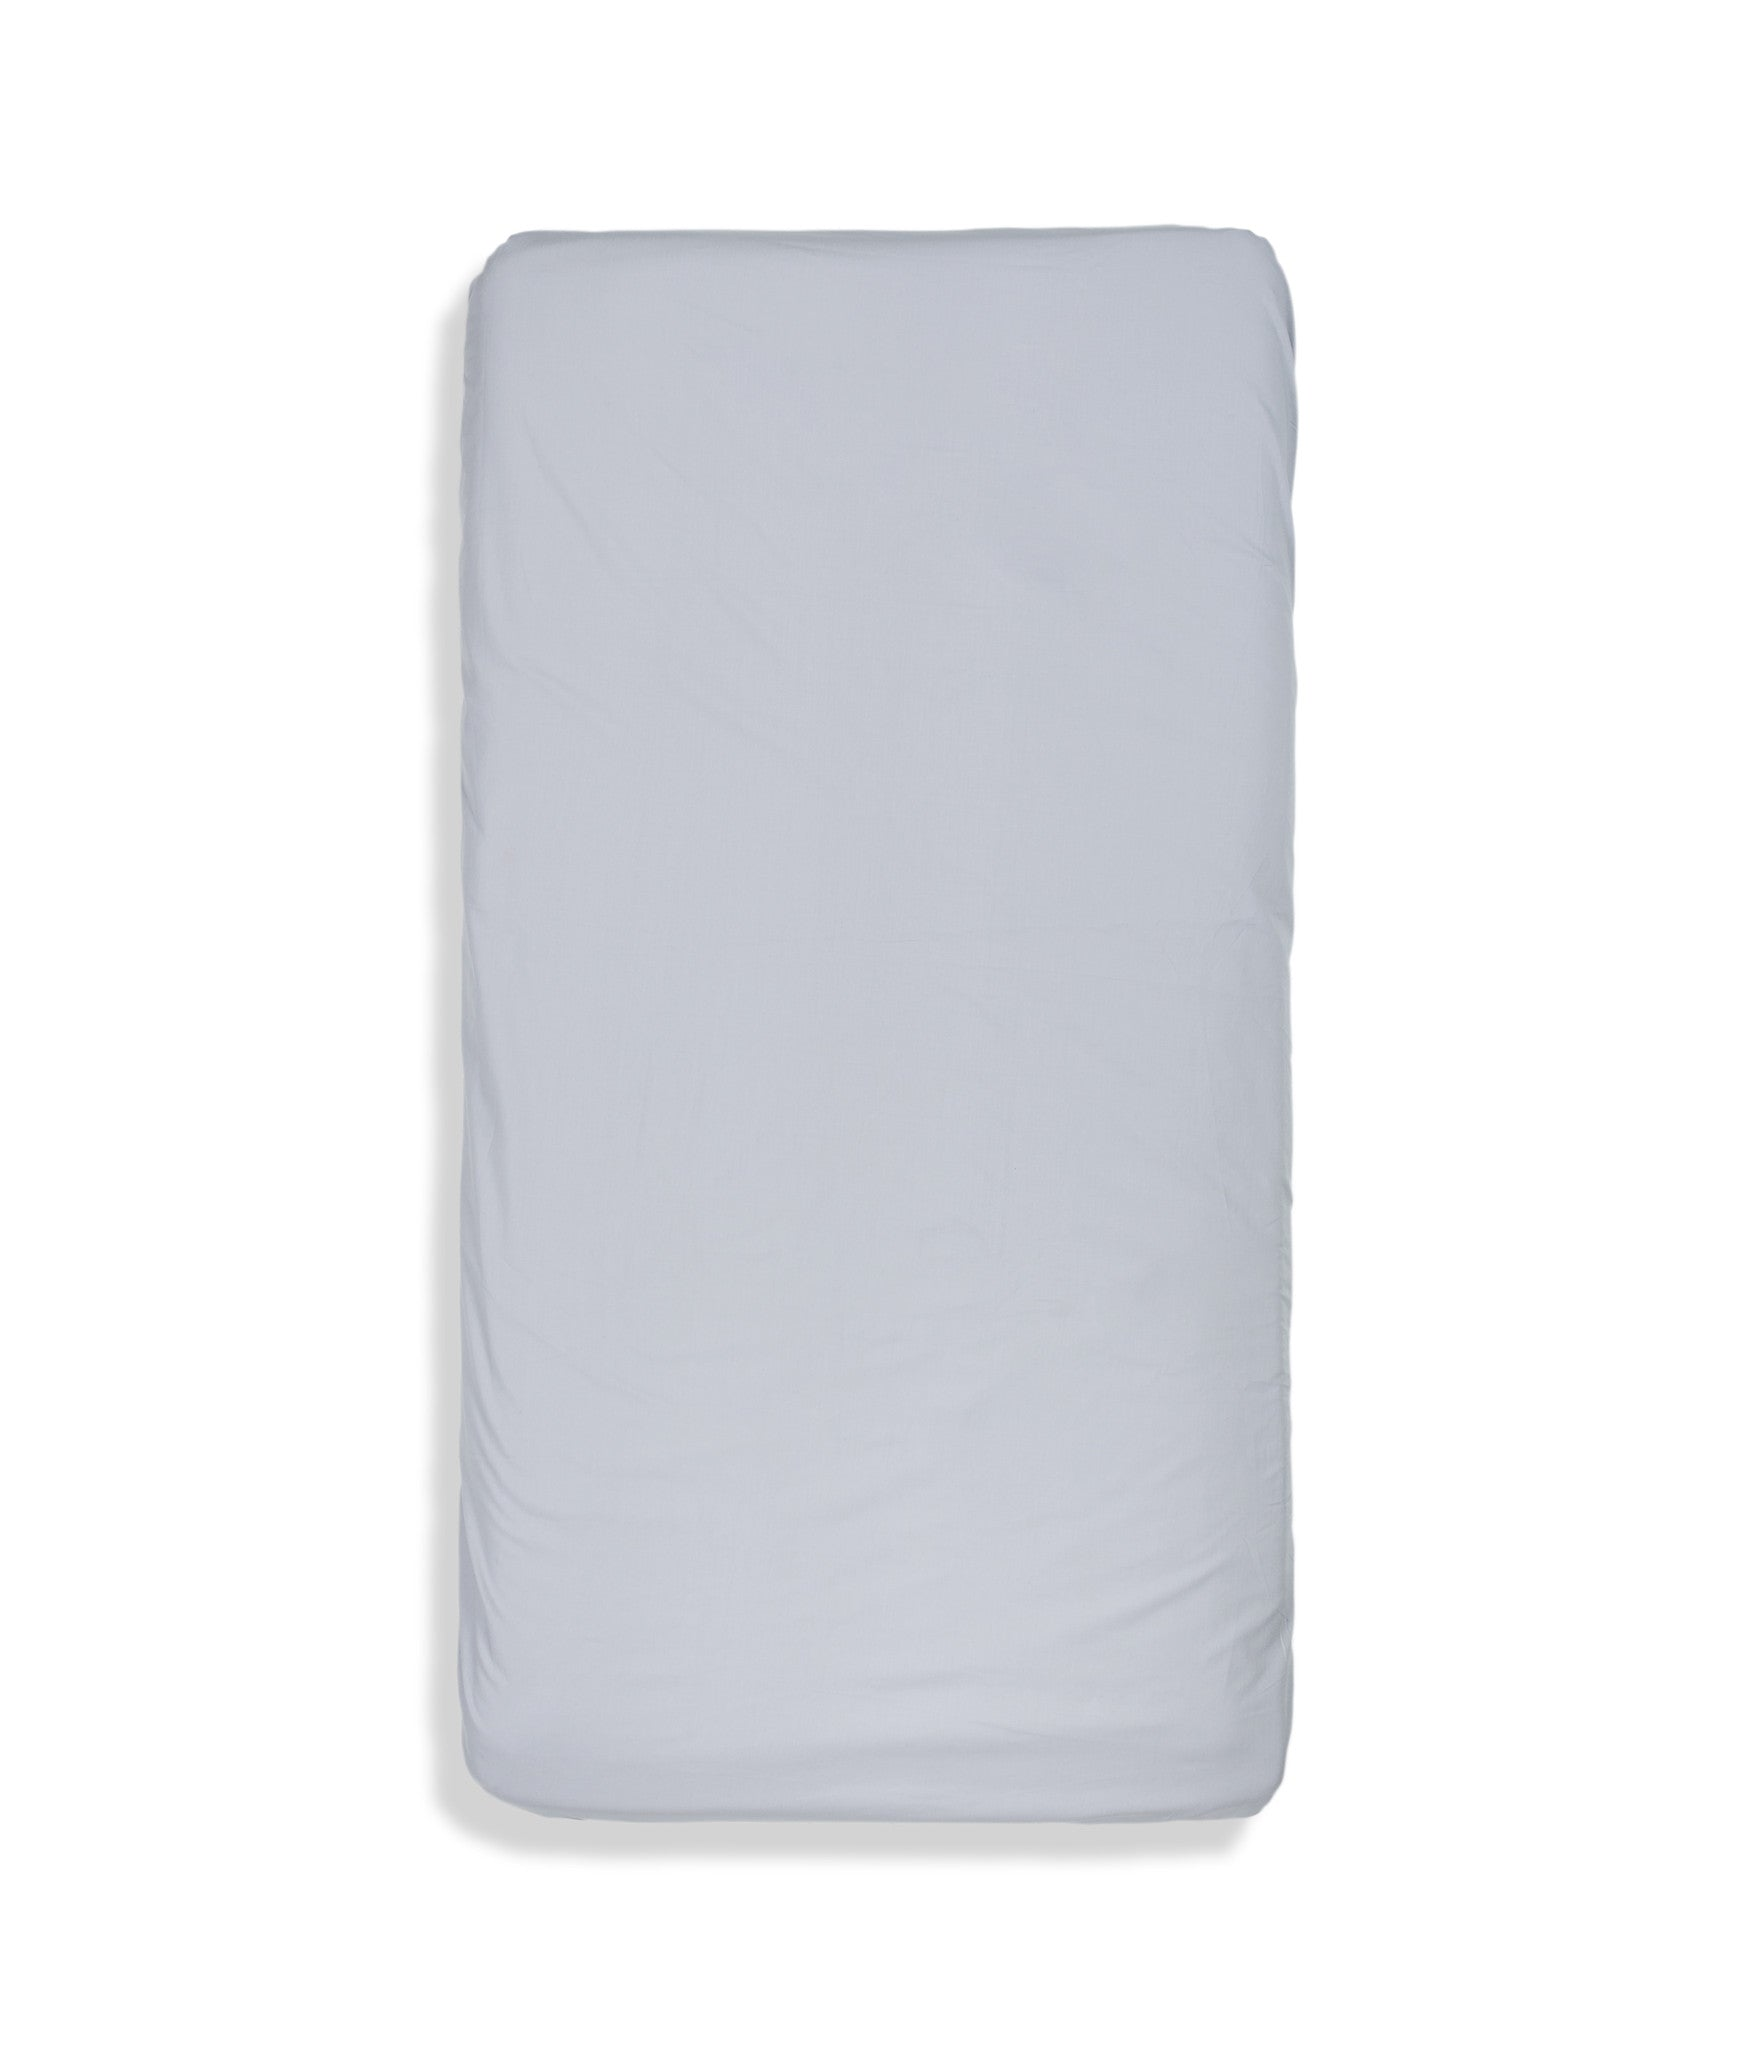 Organic cotton solid colour kids fitted sheet. Fully elasticized. Grey colour.